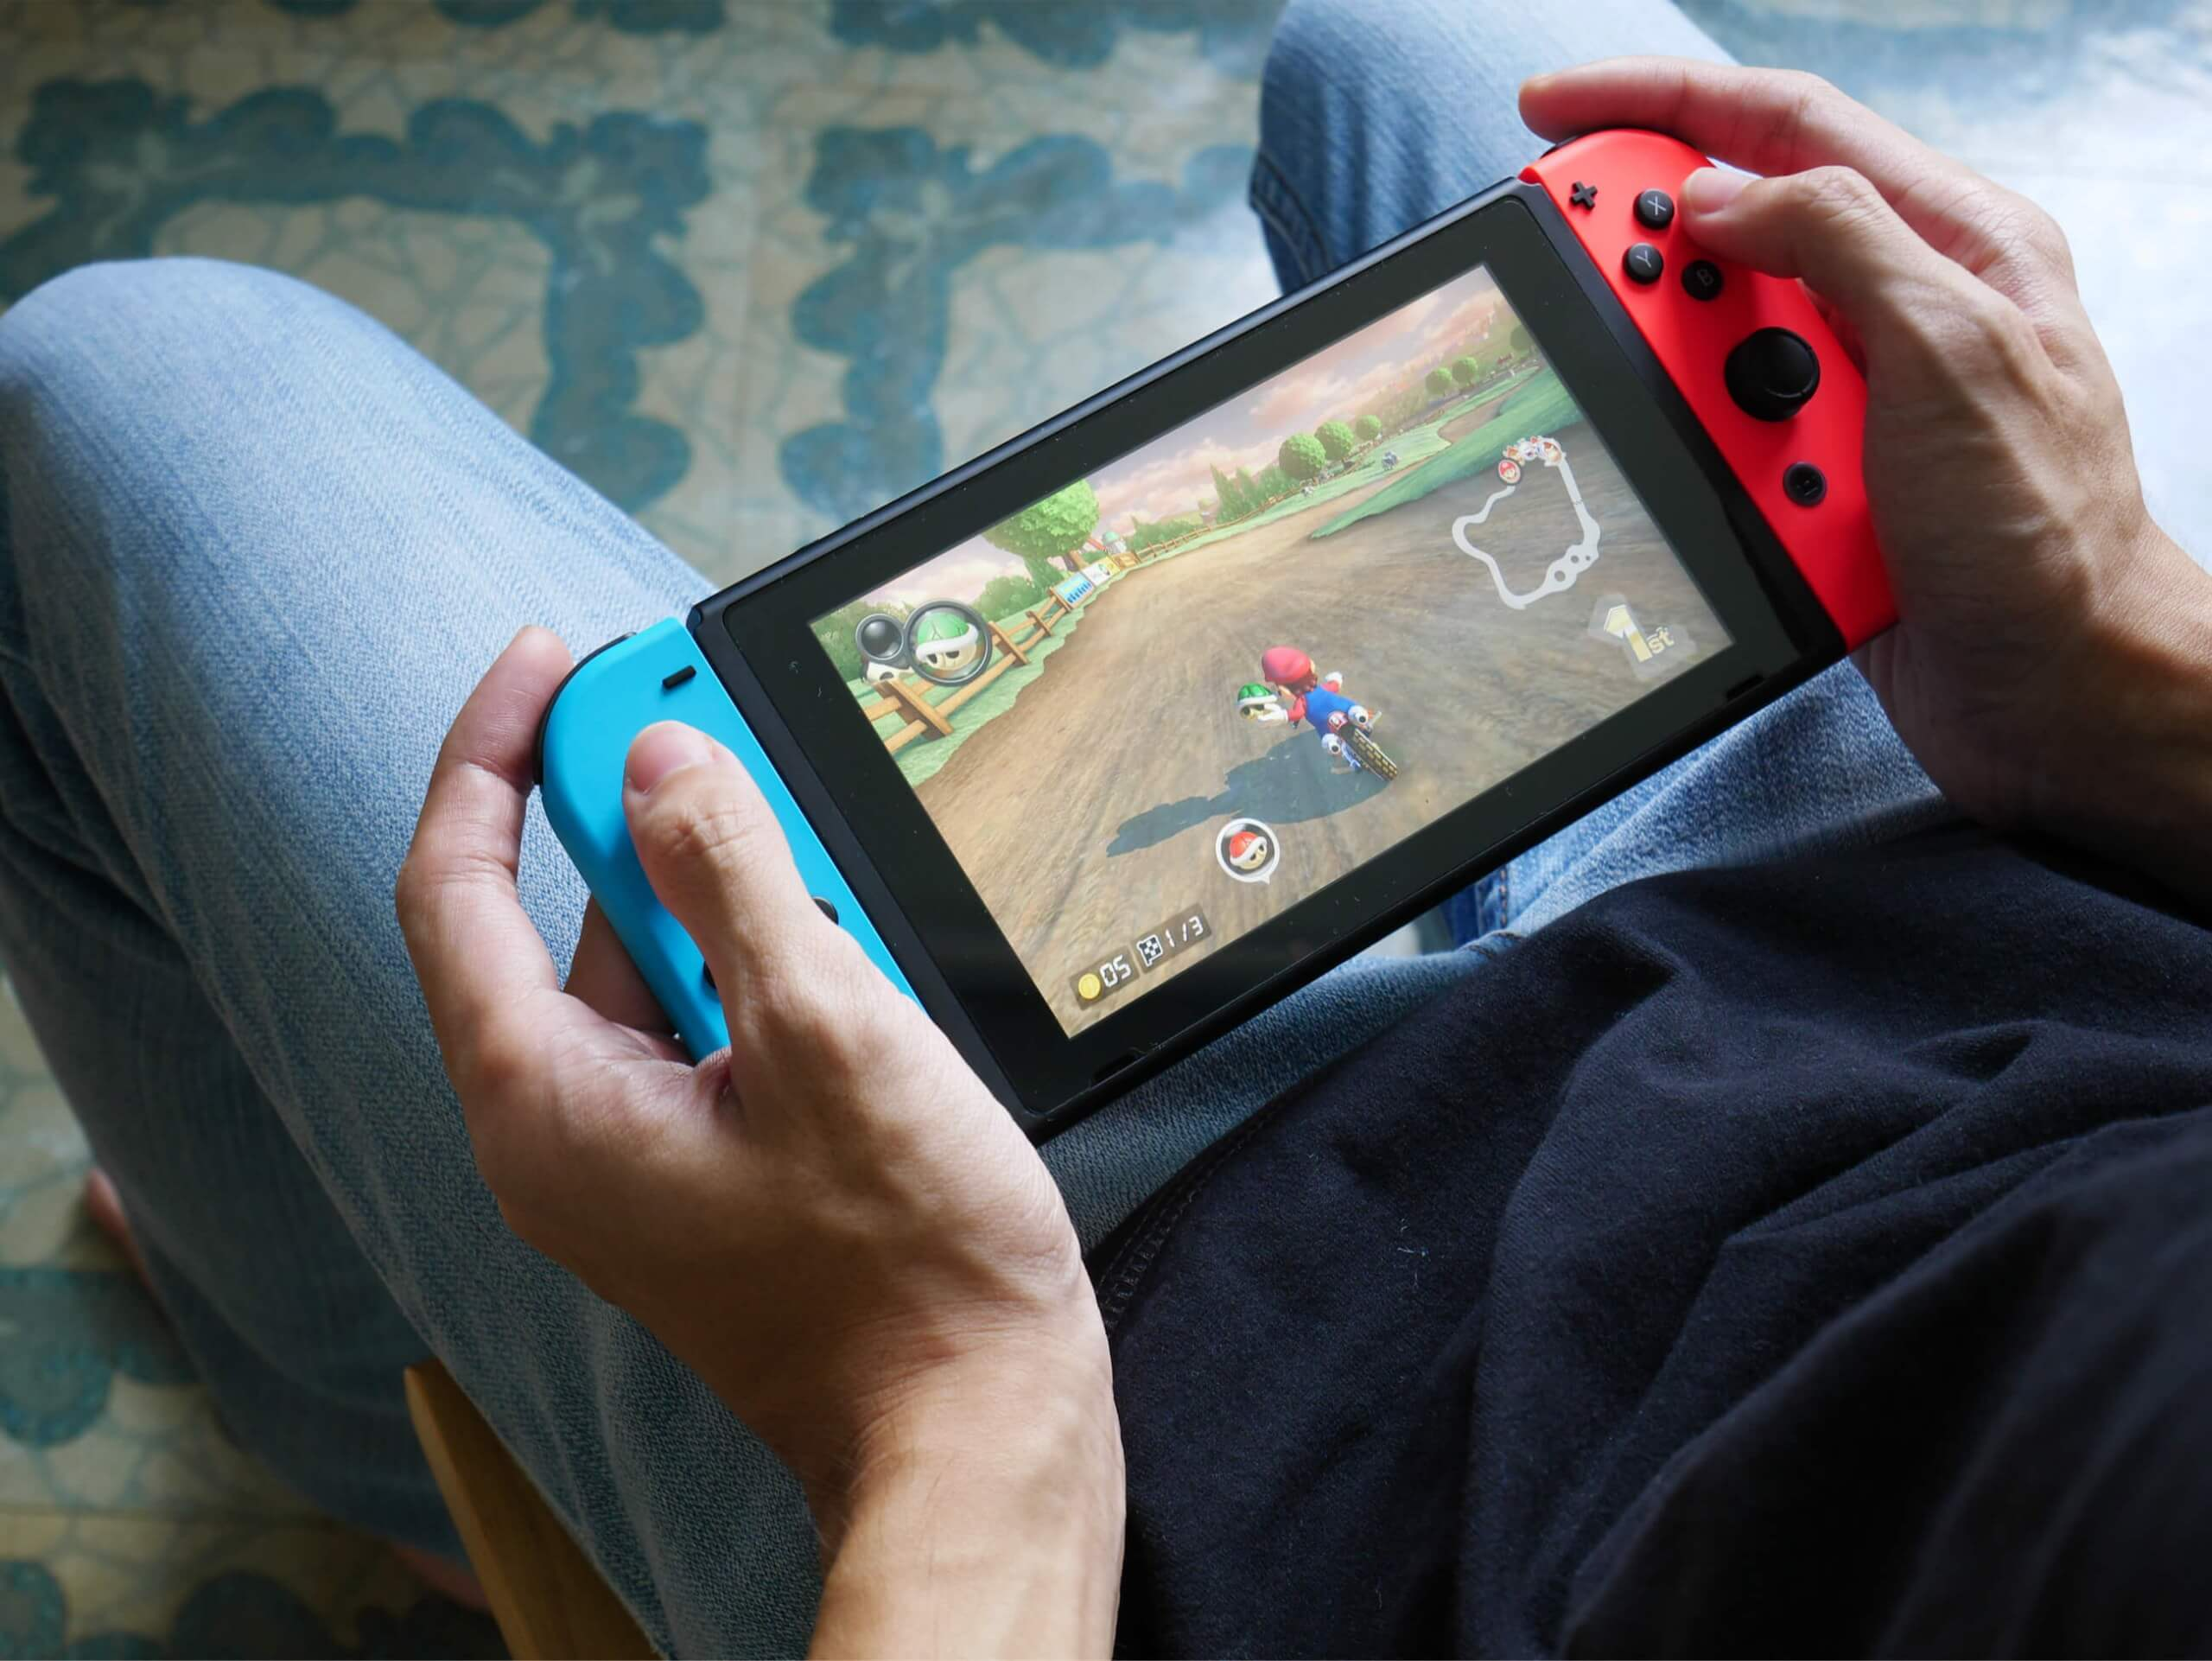 Nintendo Switch overtakes N64 in lifetime sales